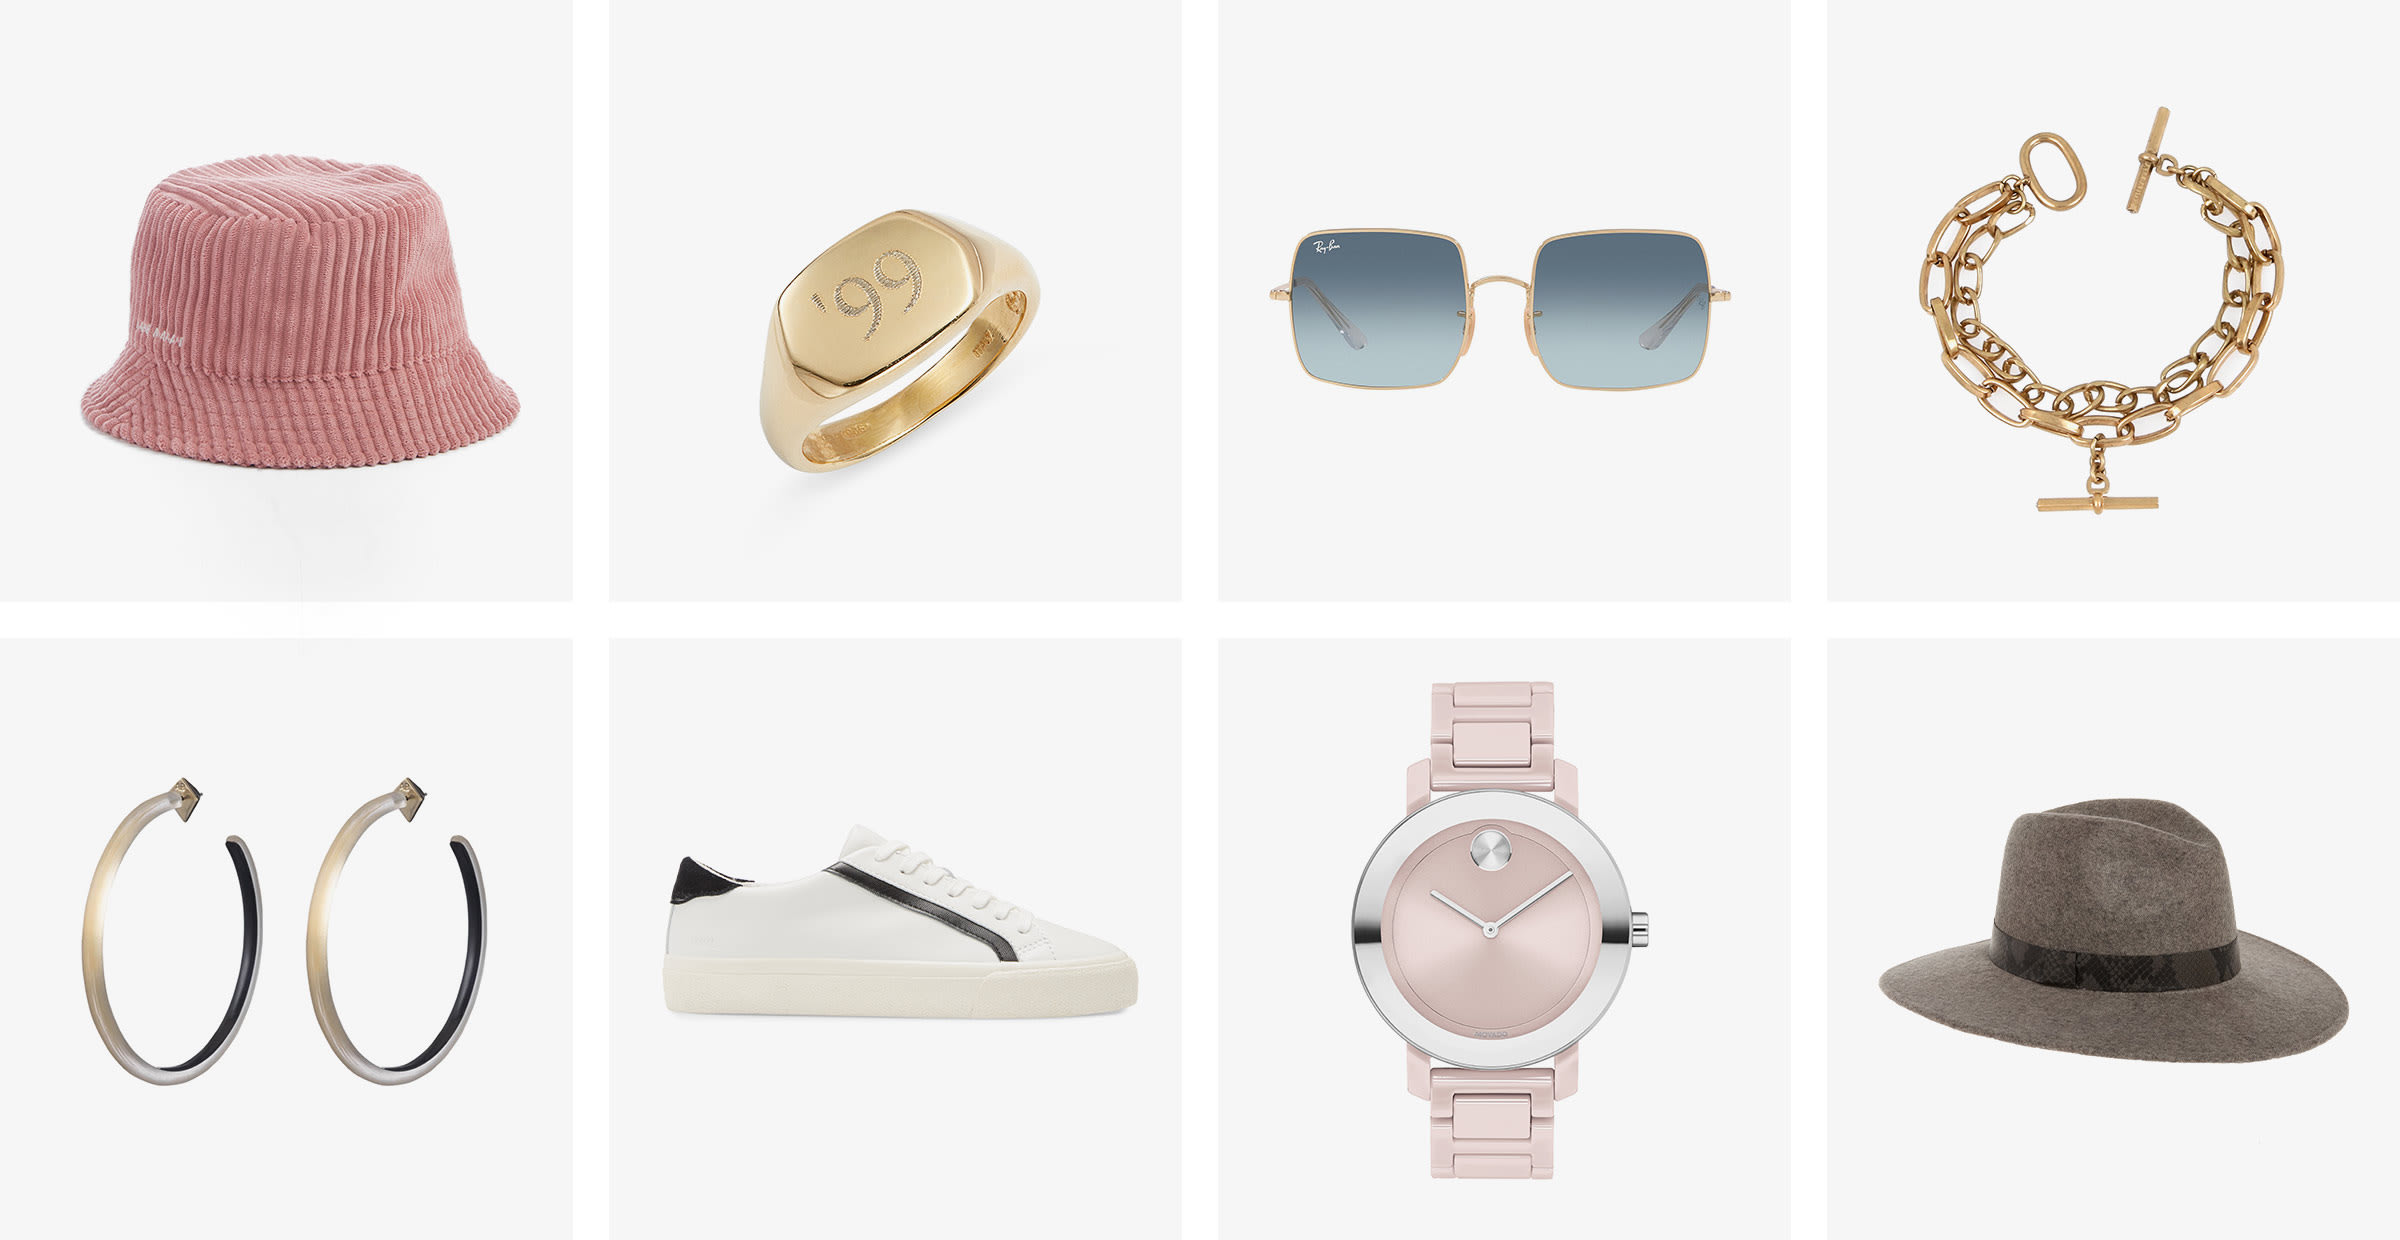 Accessorizing tips for women: watches, hat, earrings, sunglasses, jewelry